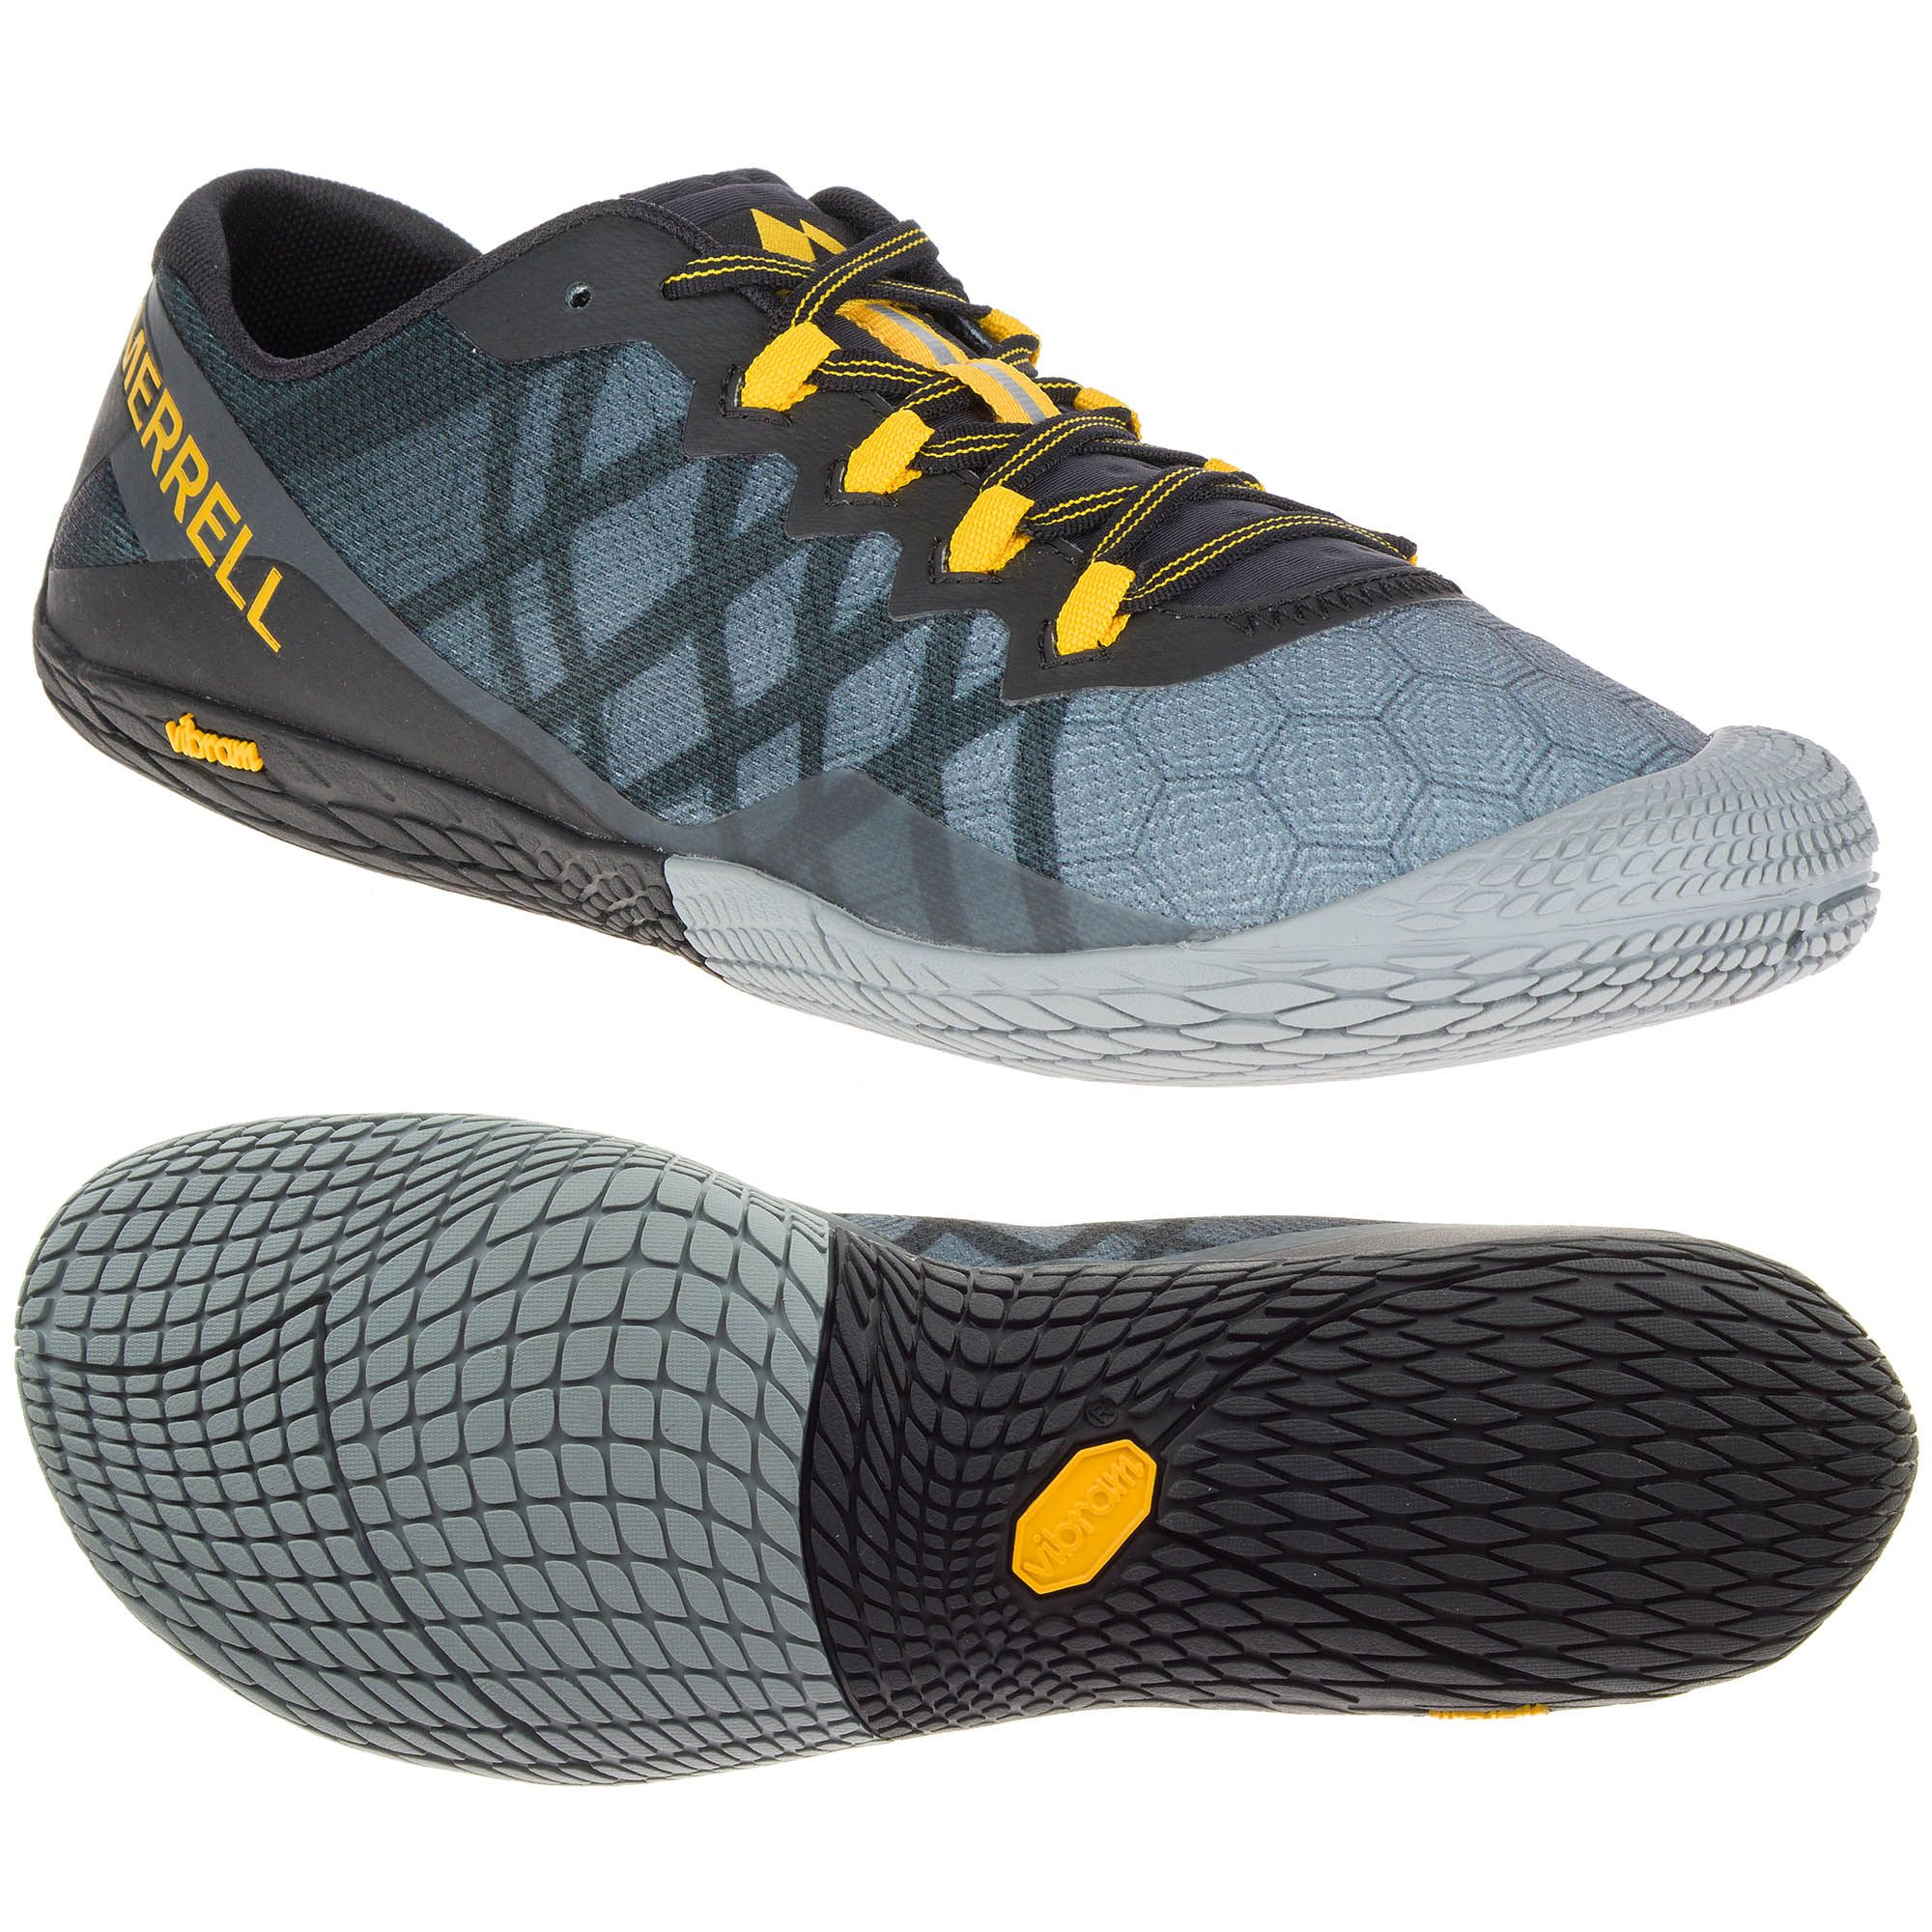 Merrell Barefoot Shoes Mens